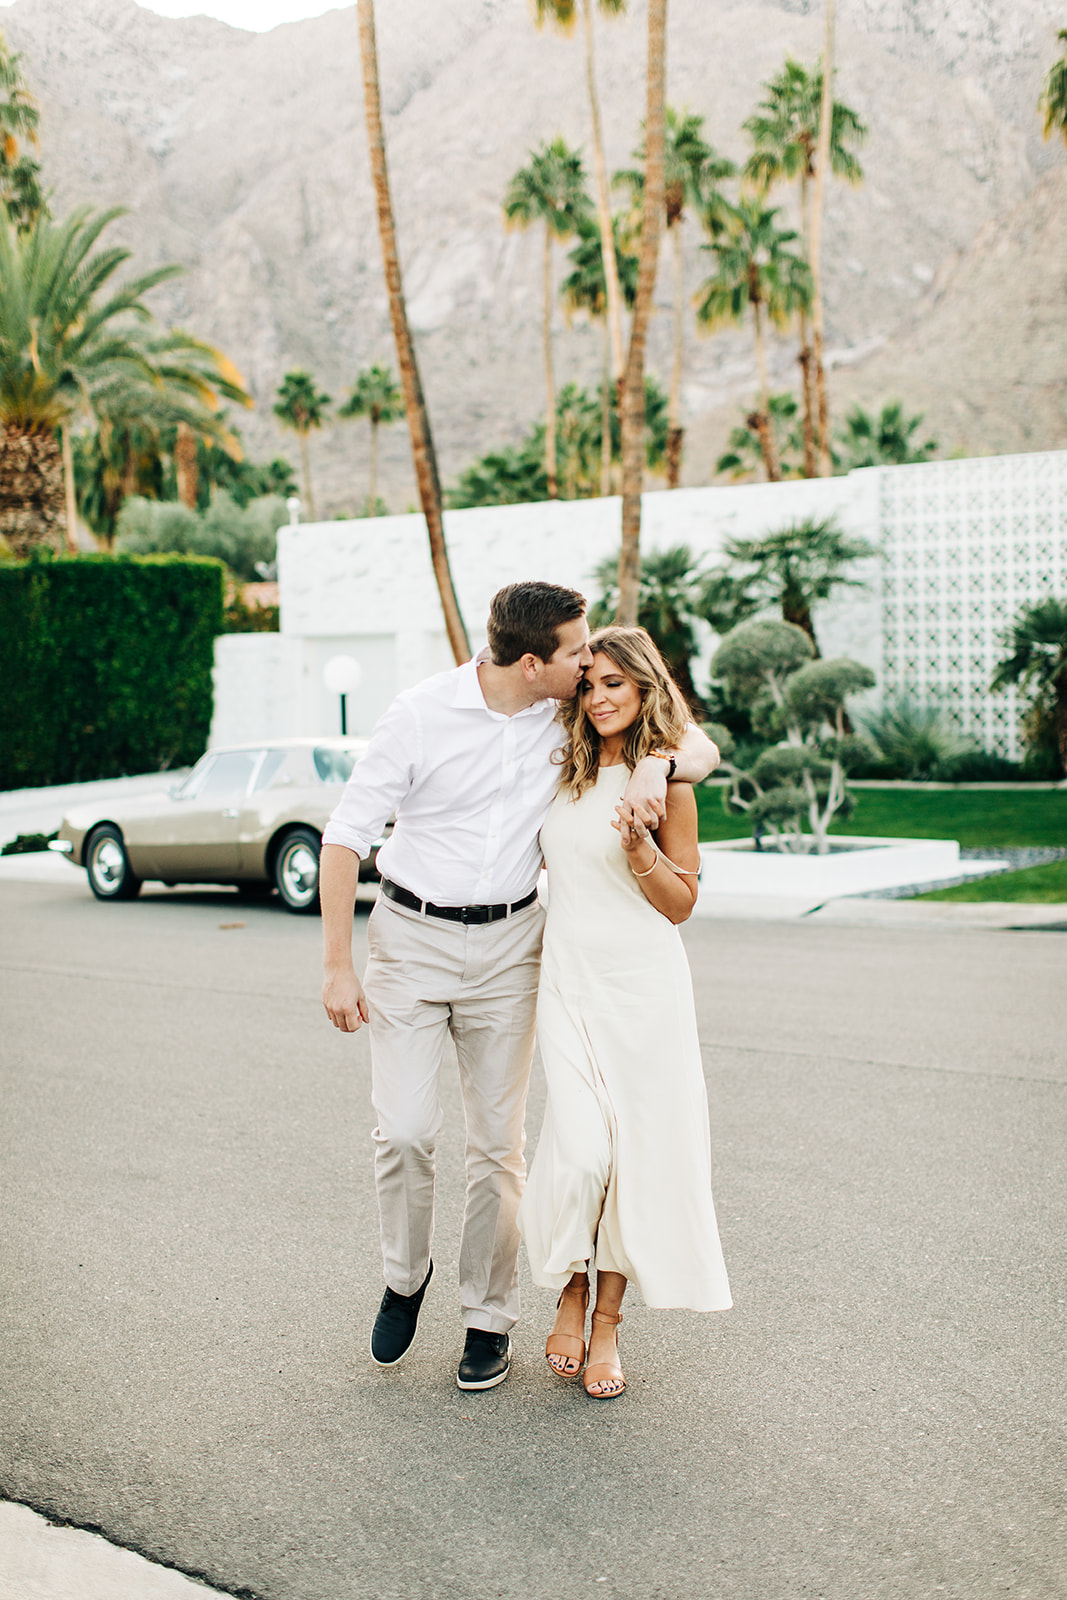 Paulina-Drew_Palm-Springs-Engagement-Photos_Clarisse-Rae_Southern-California-Wedding-Photographer-29